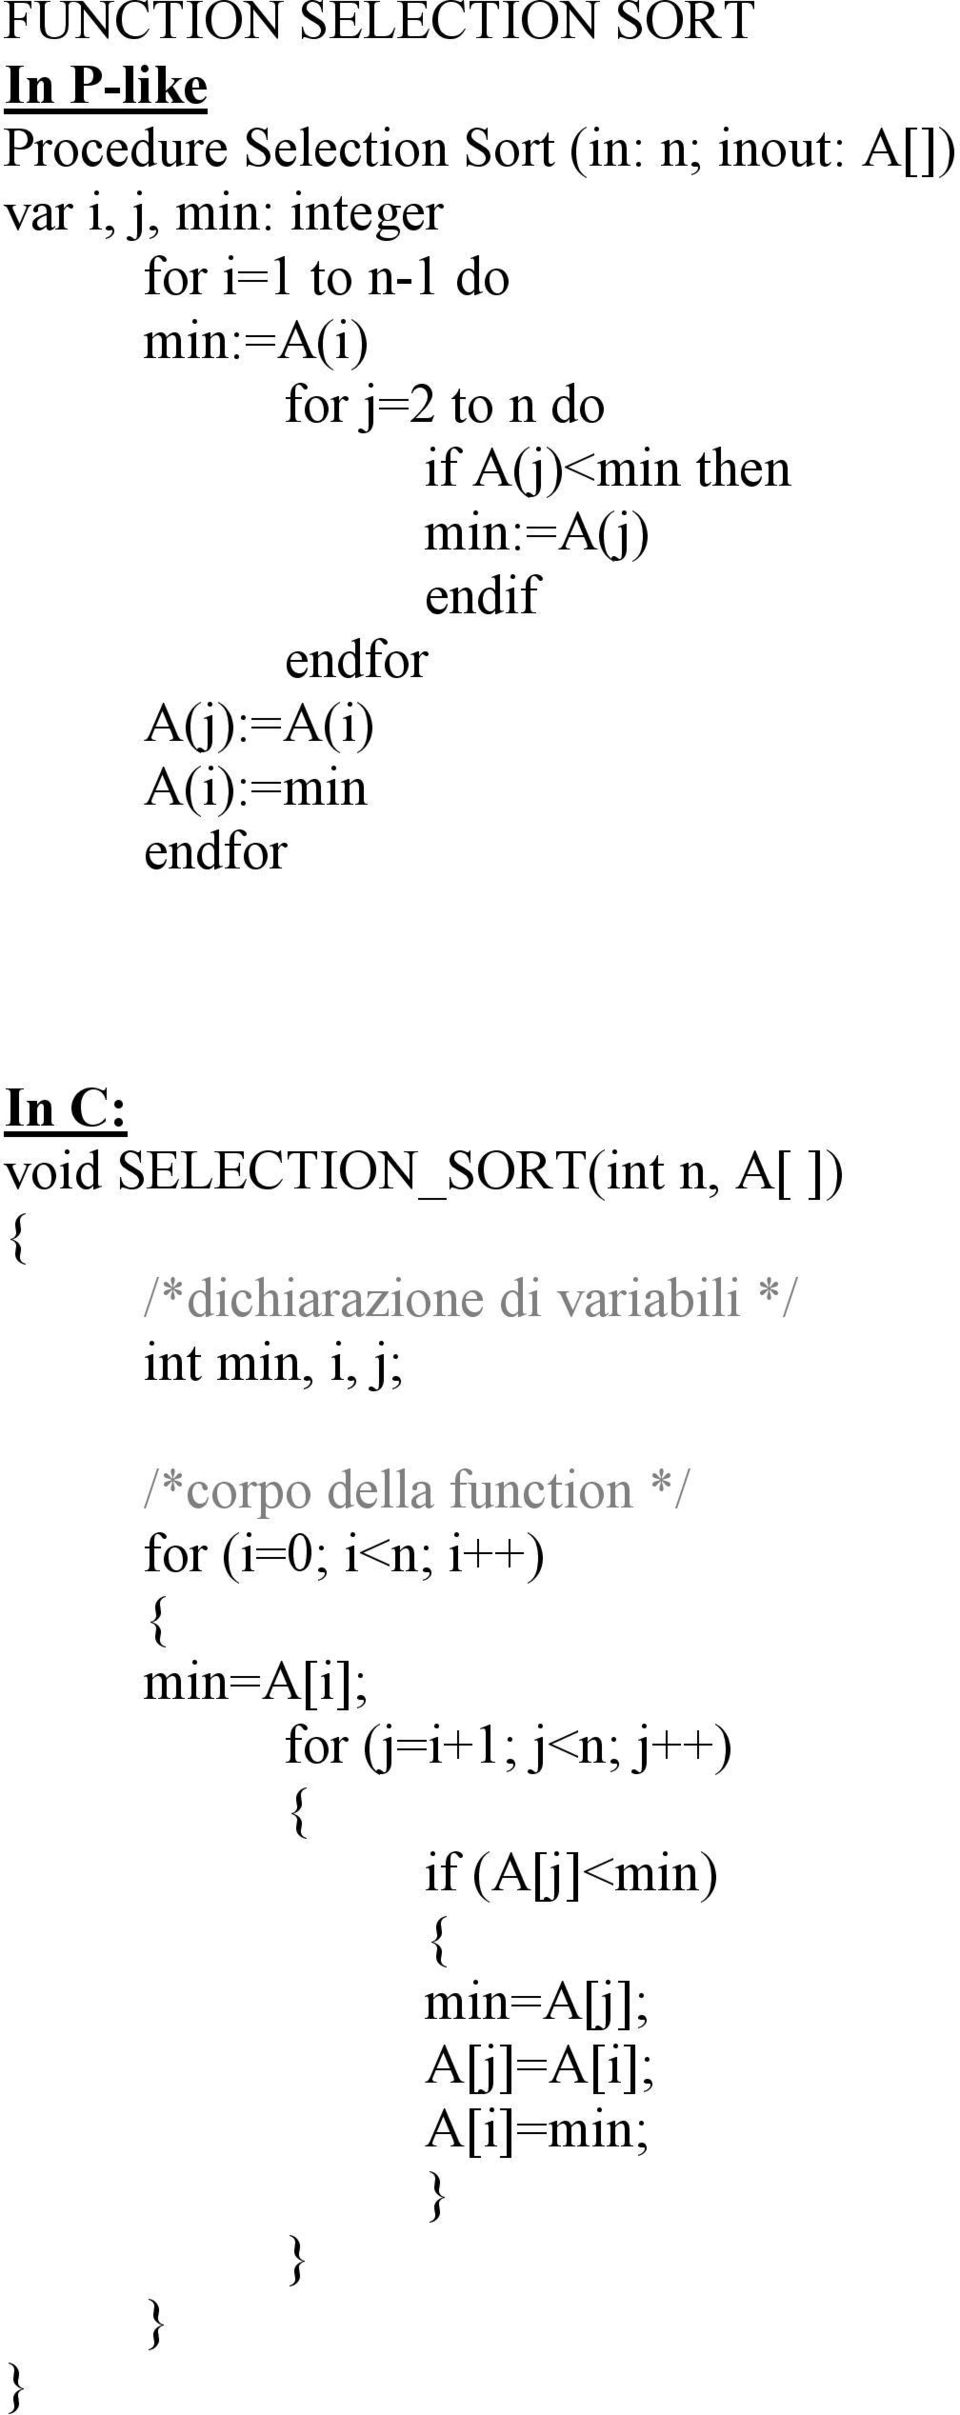 endfor In C: void SELECTION_SORT(int n, A[ ]) /*dichiarazione di variabili */ int min, i, j; /*corpo